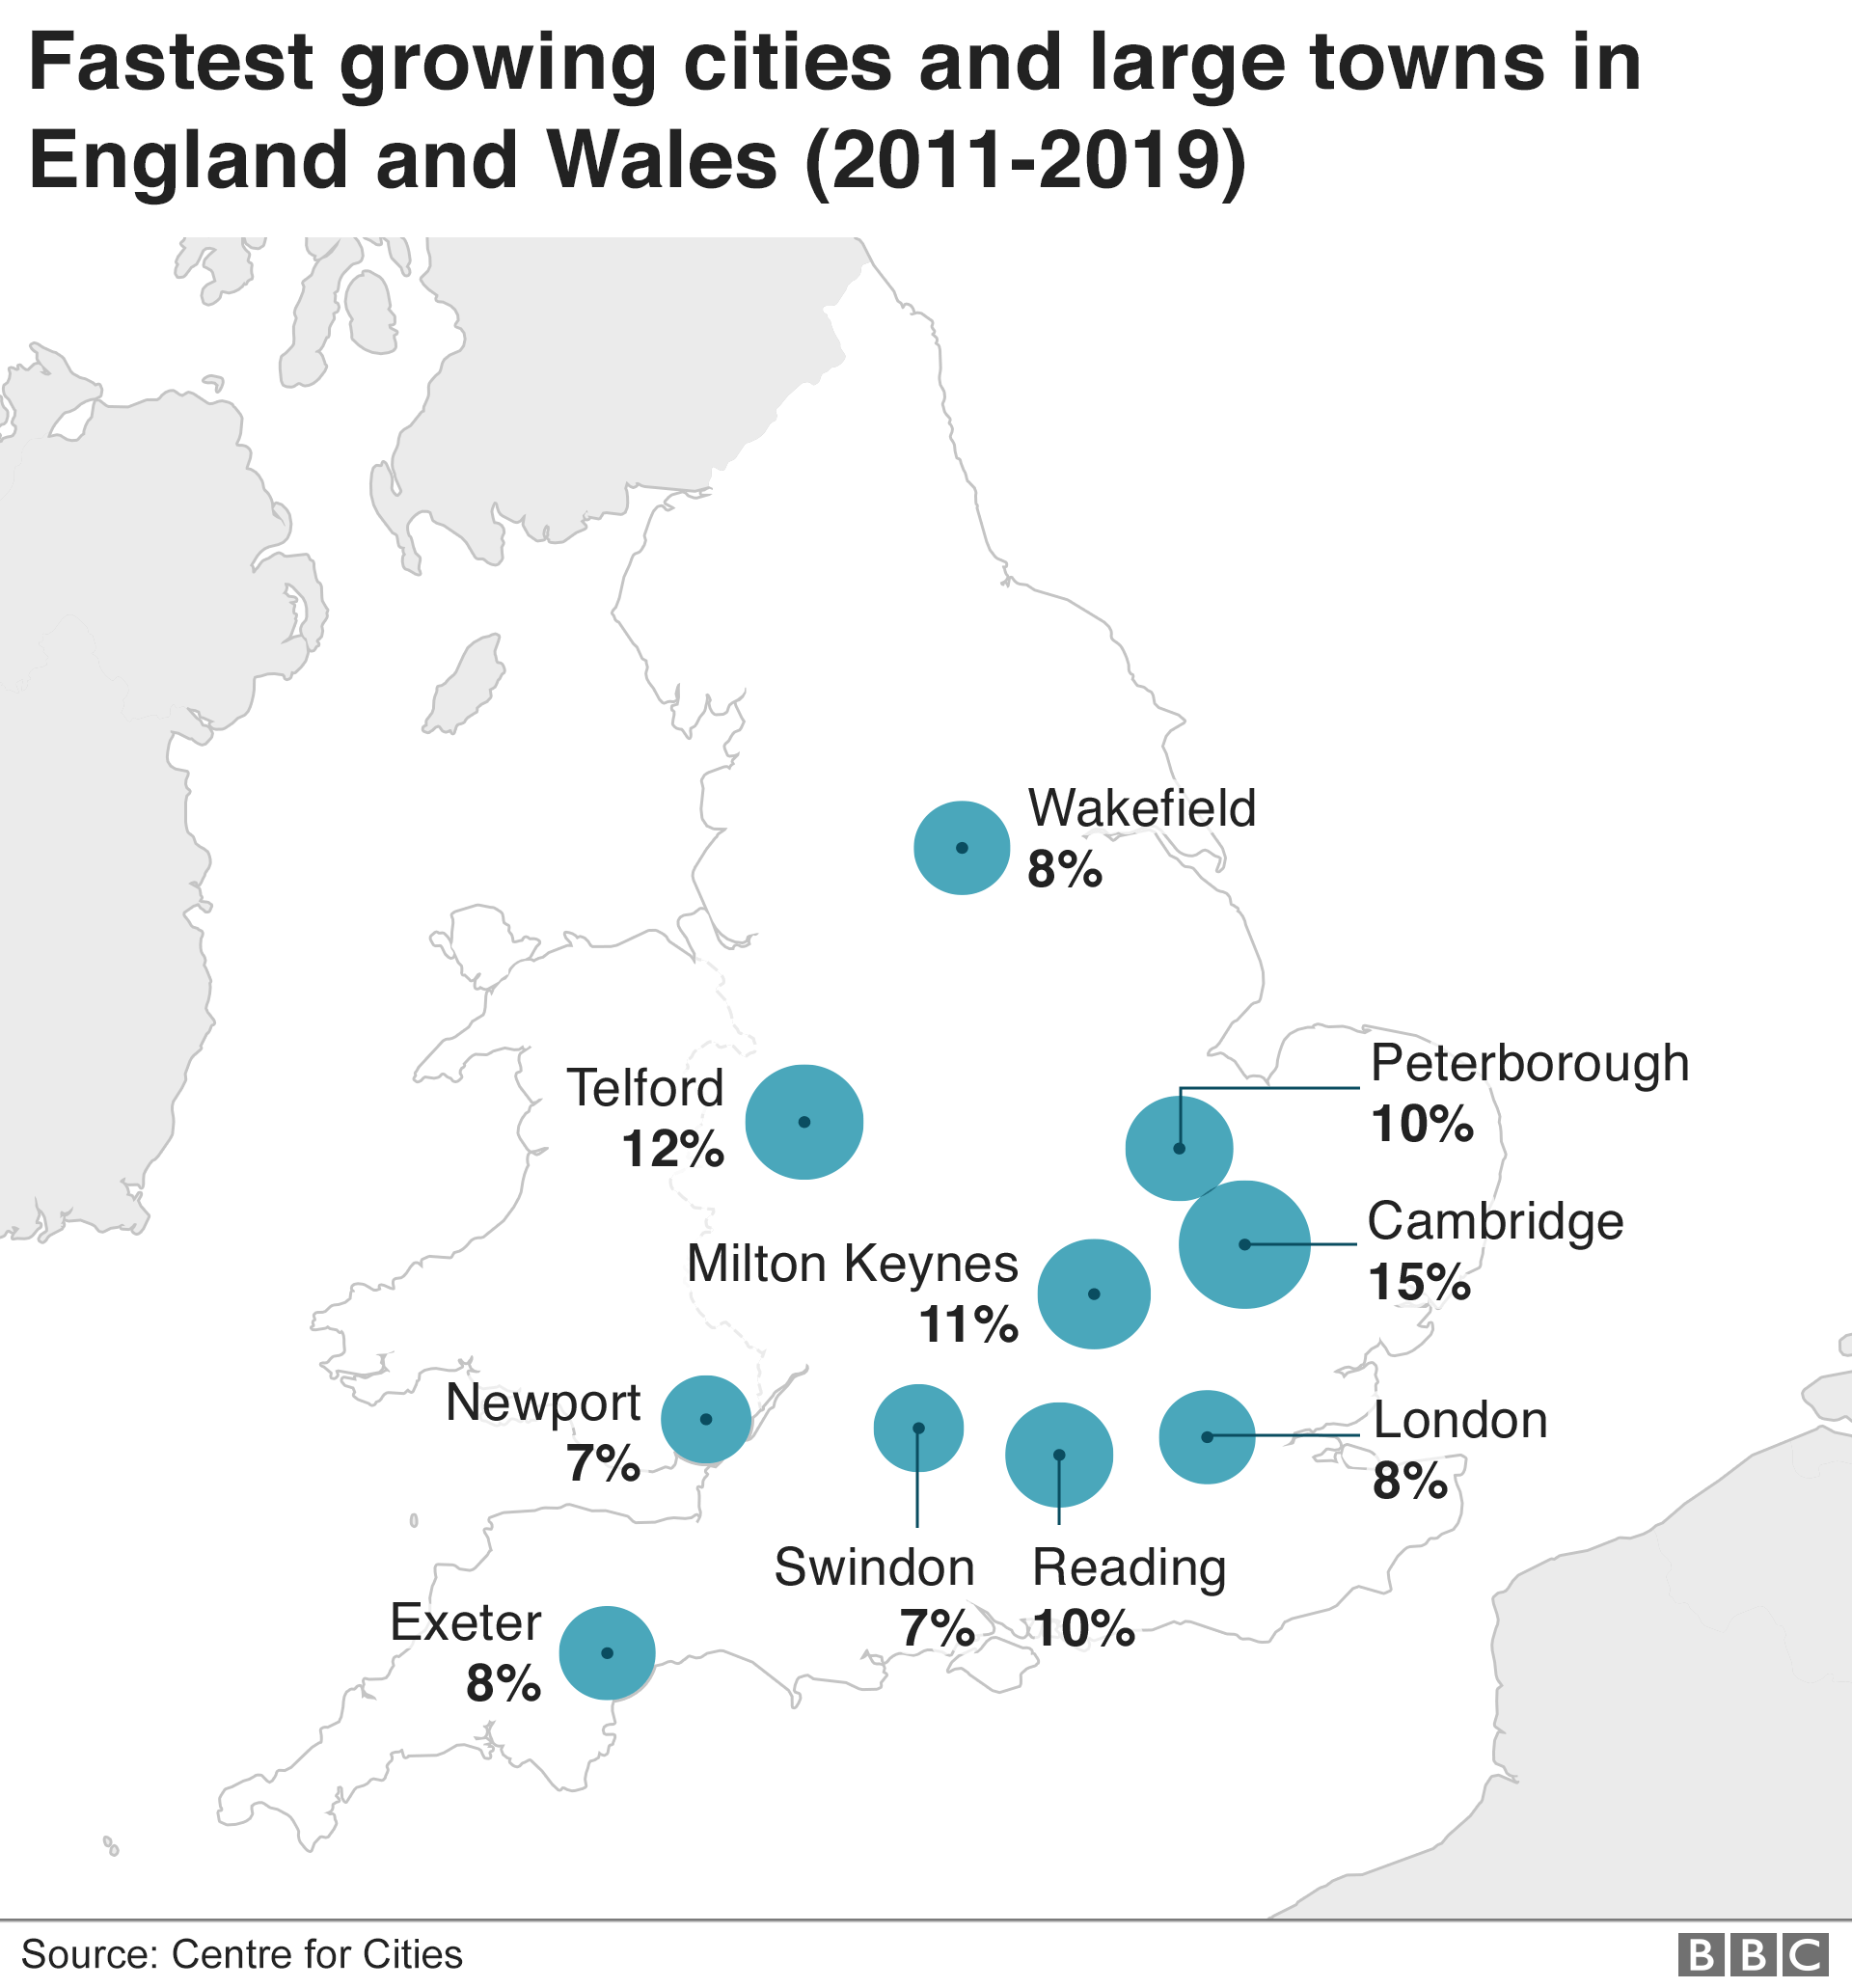 Housing crisis: Where are the most new homes being built? - BBC News